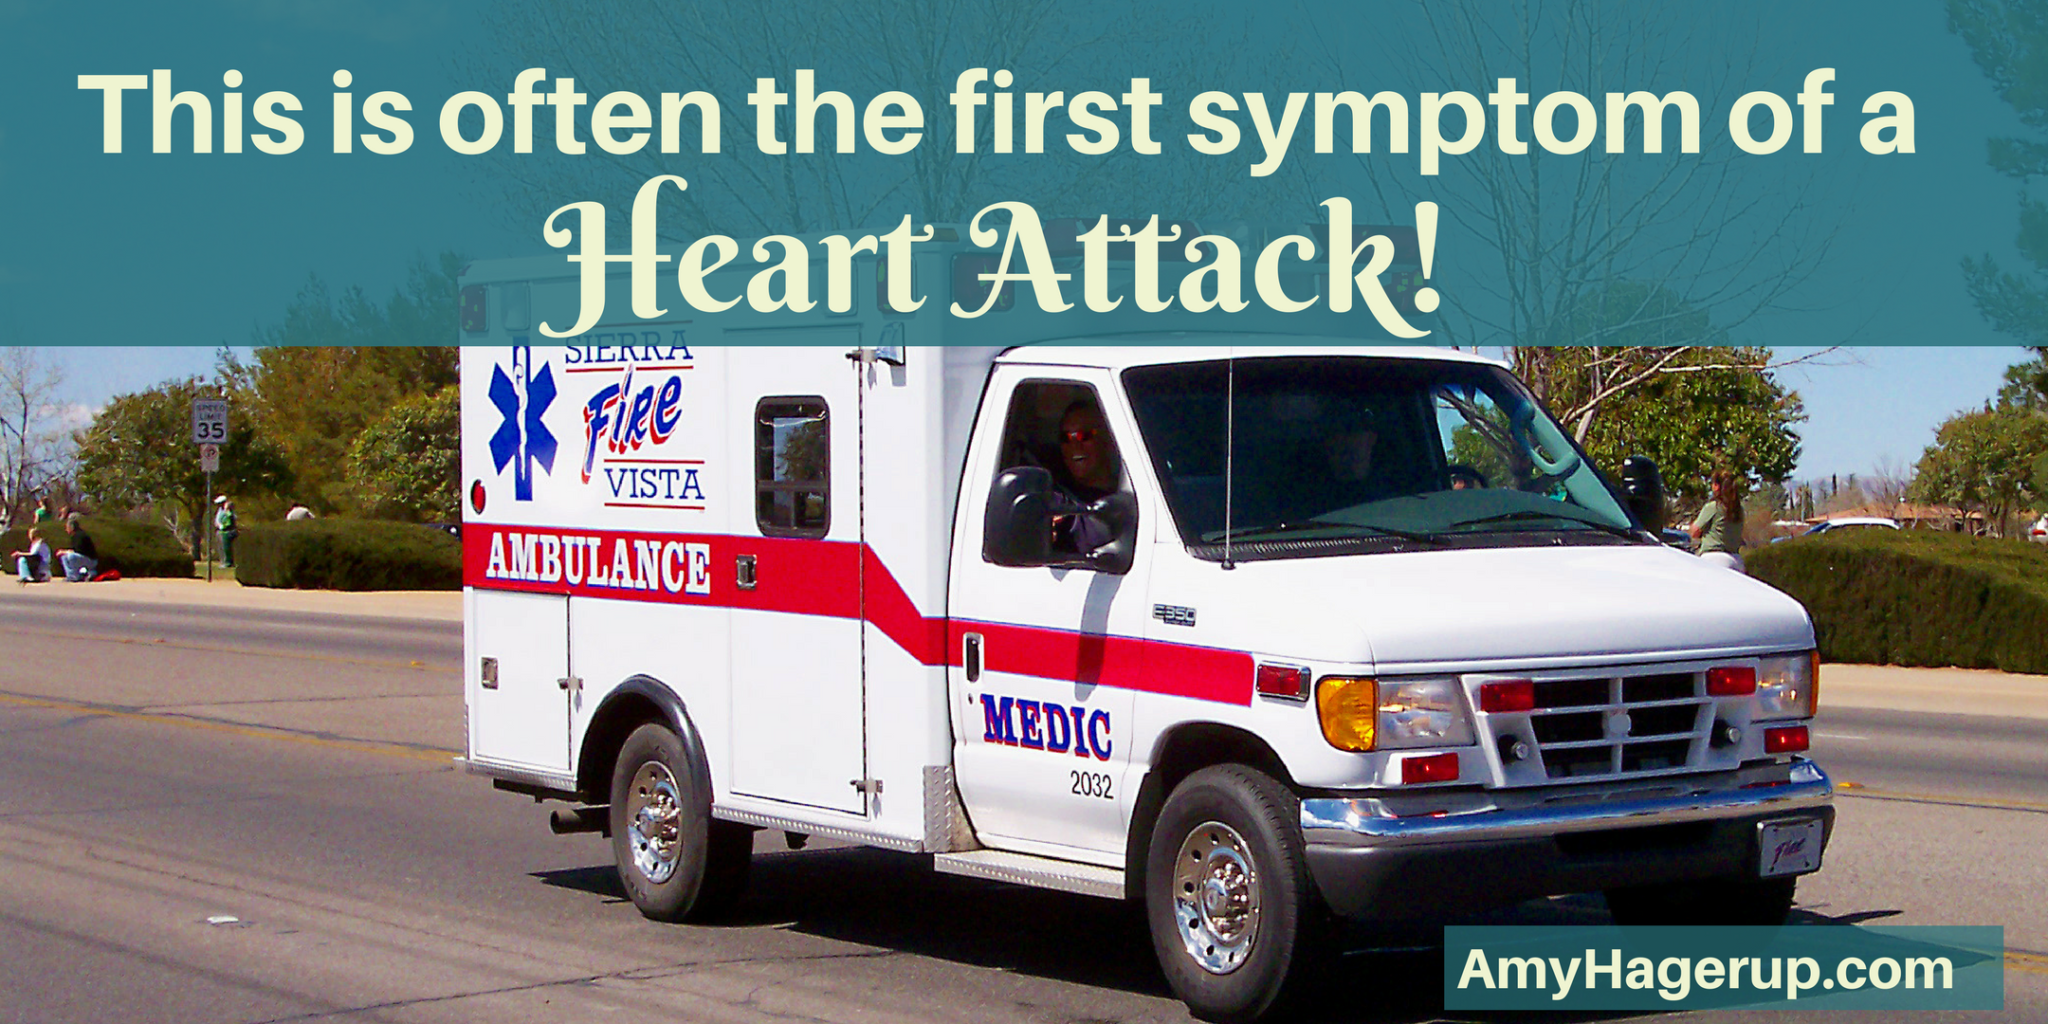 Check out what could be the surprising first symptom of a heart attack.